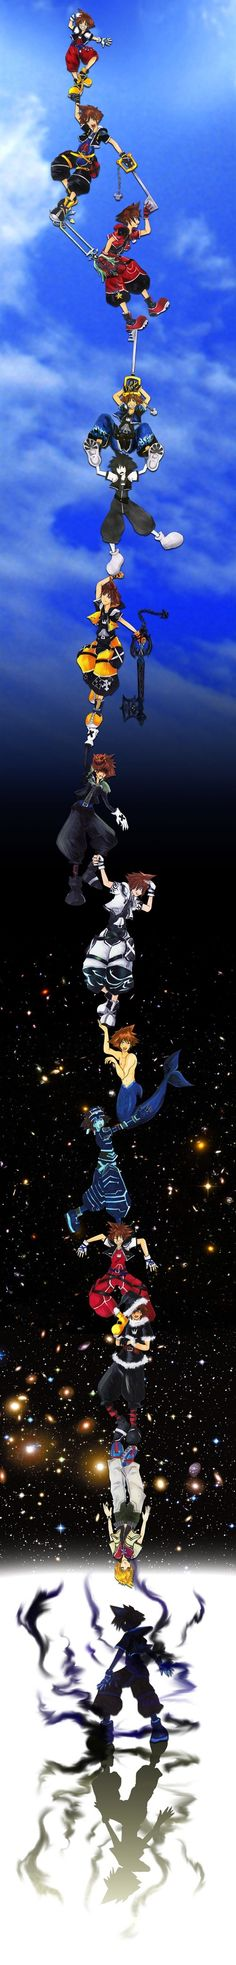 Sora ladder